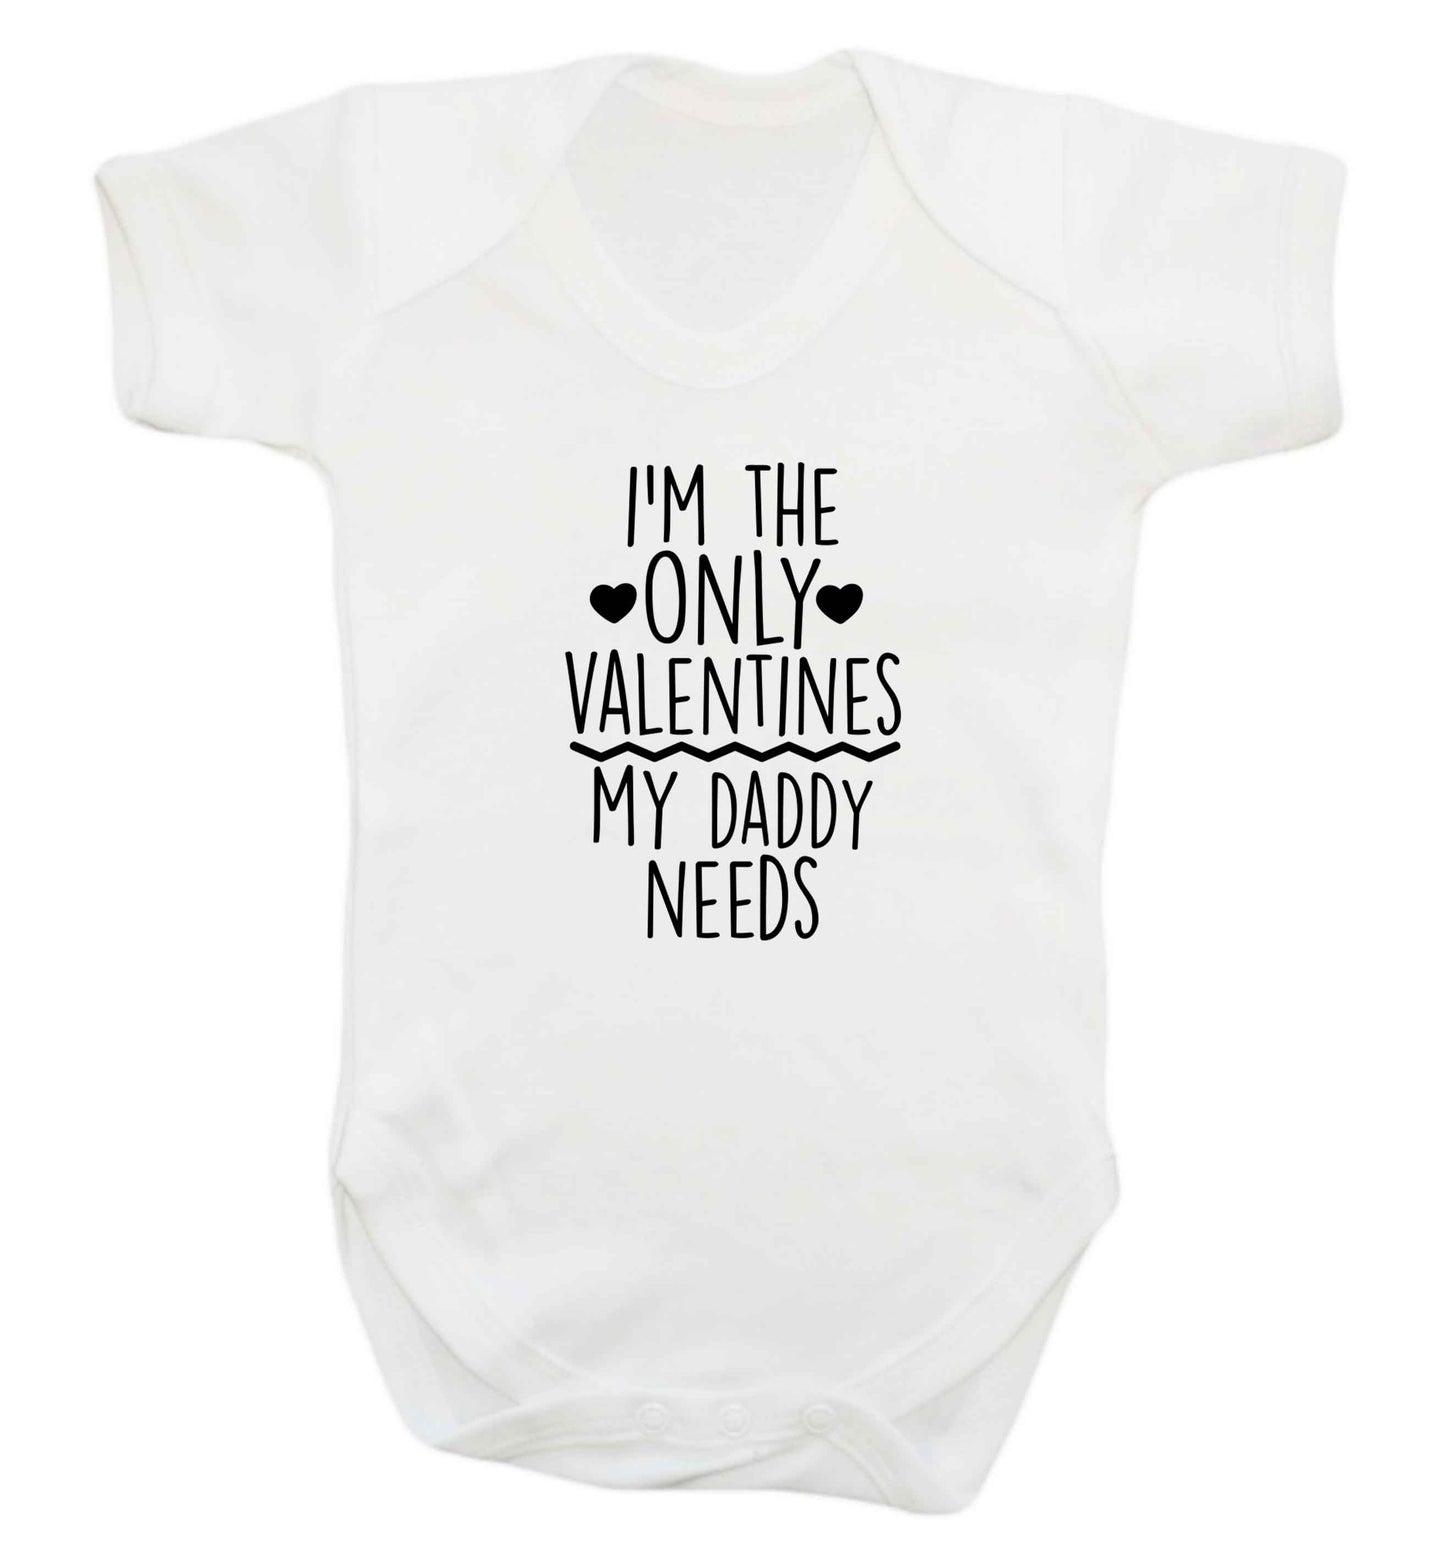 I'm the only valentines my daddy needs baby vest white 18-24 months